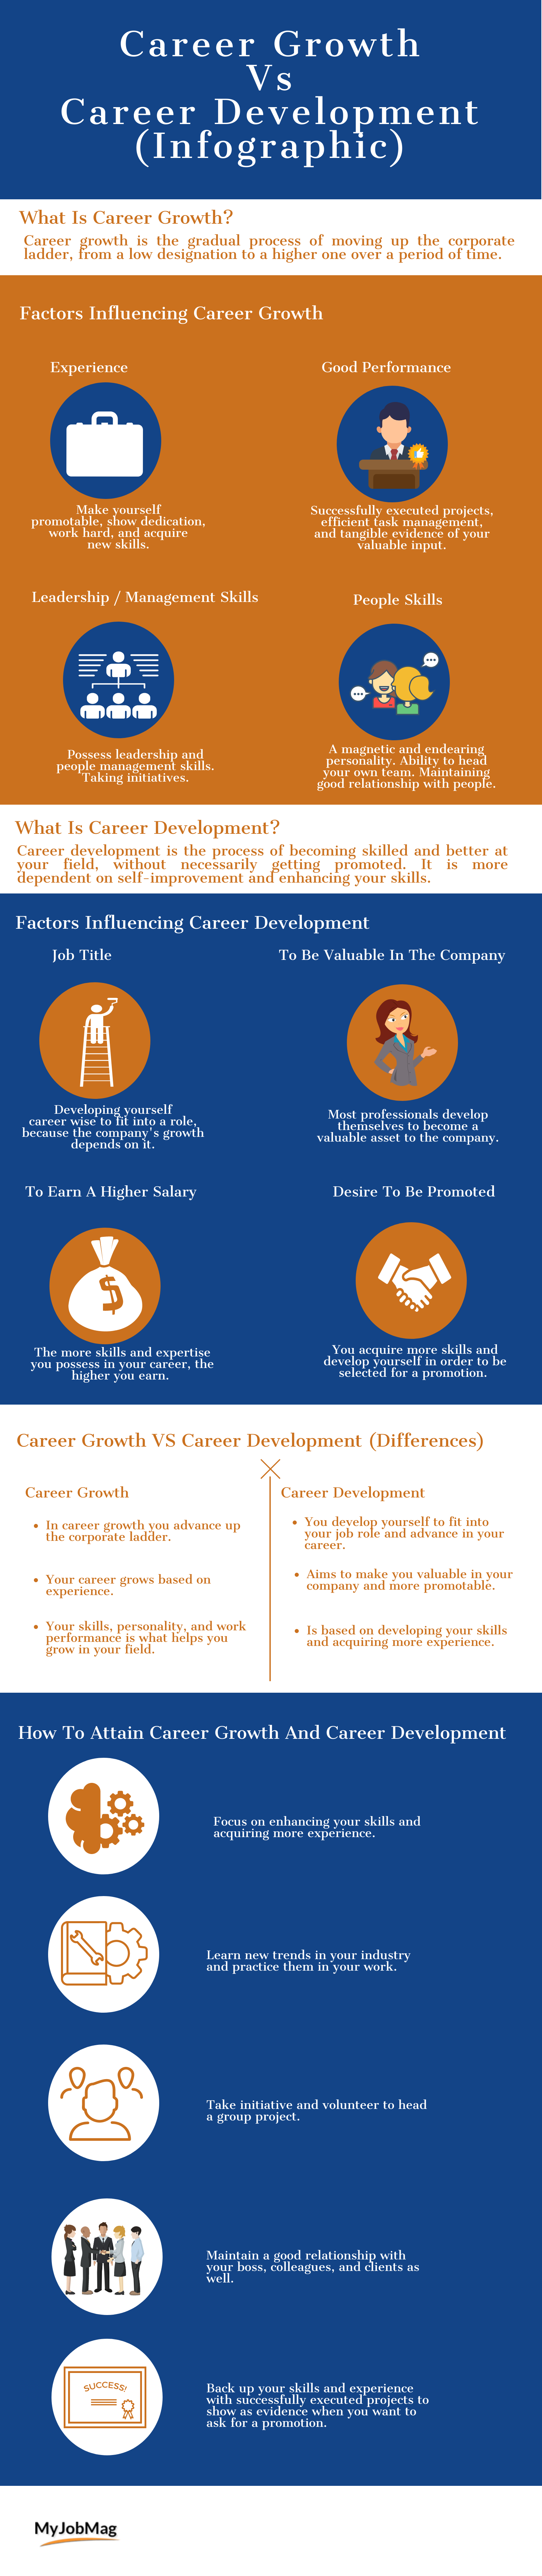 the difference and similarities between career growth and career development